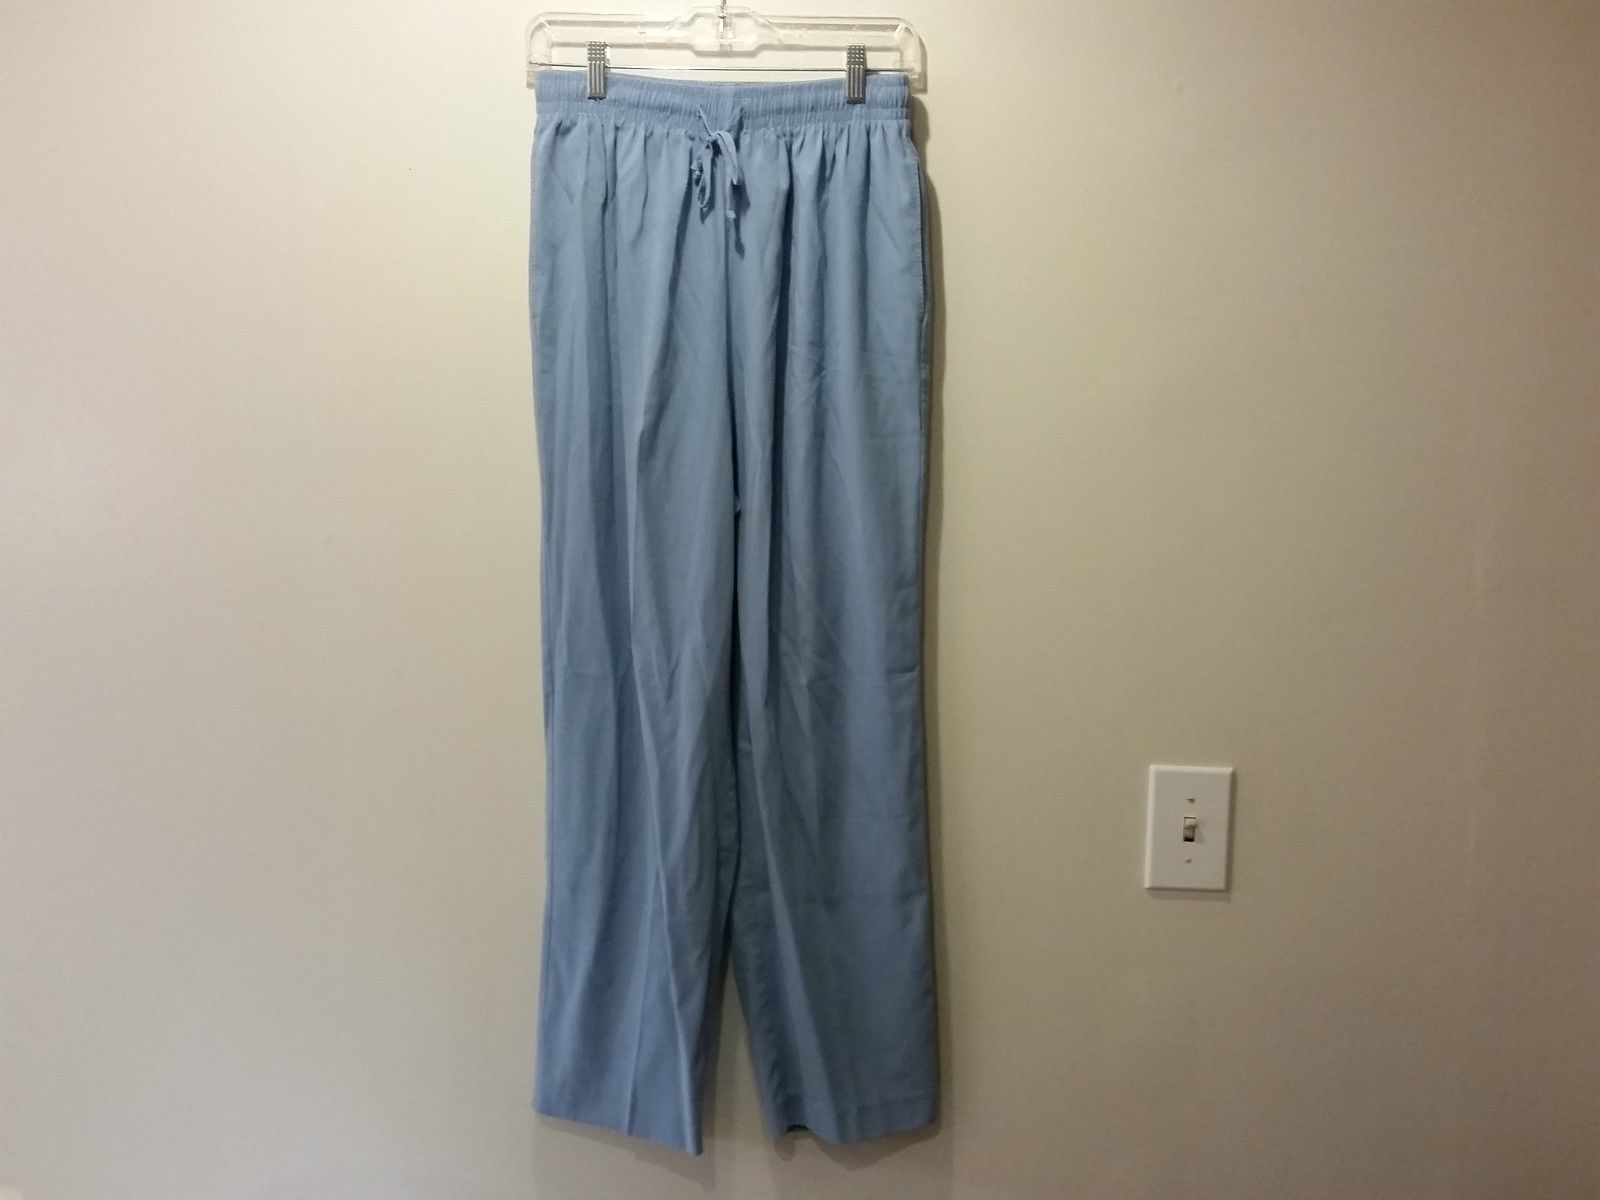 Size 16 Light Blue Stretchy Waist Casual Pants Alfred Dunner Great Condition